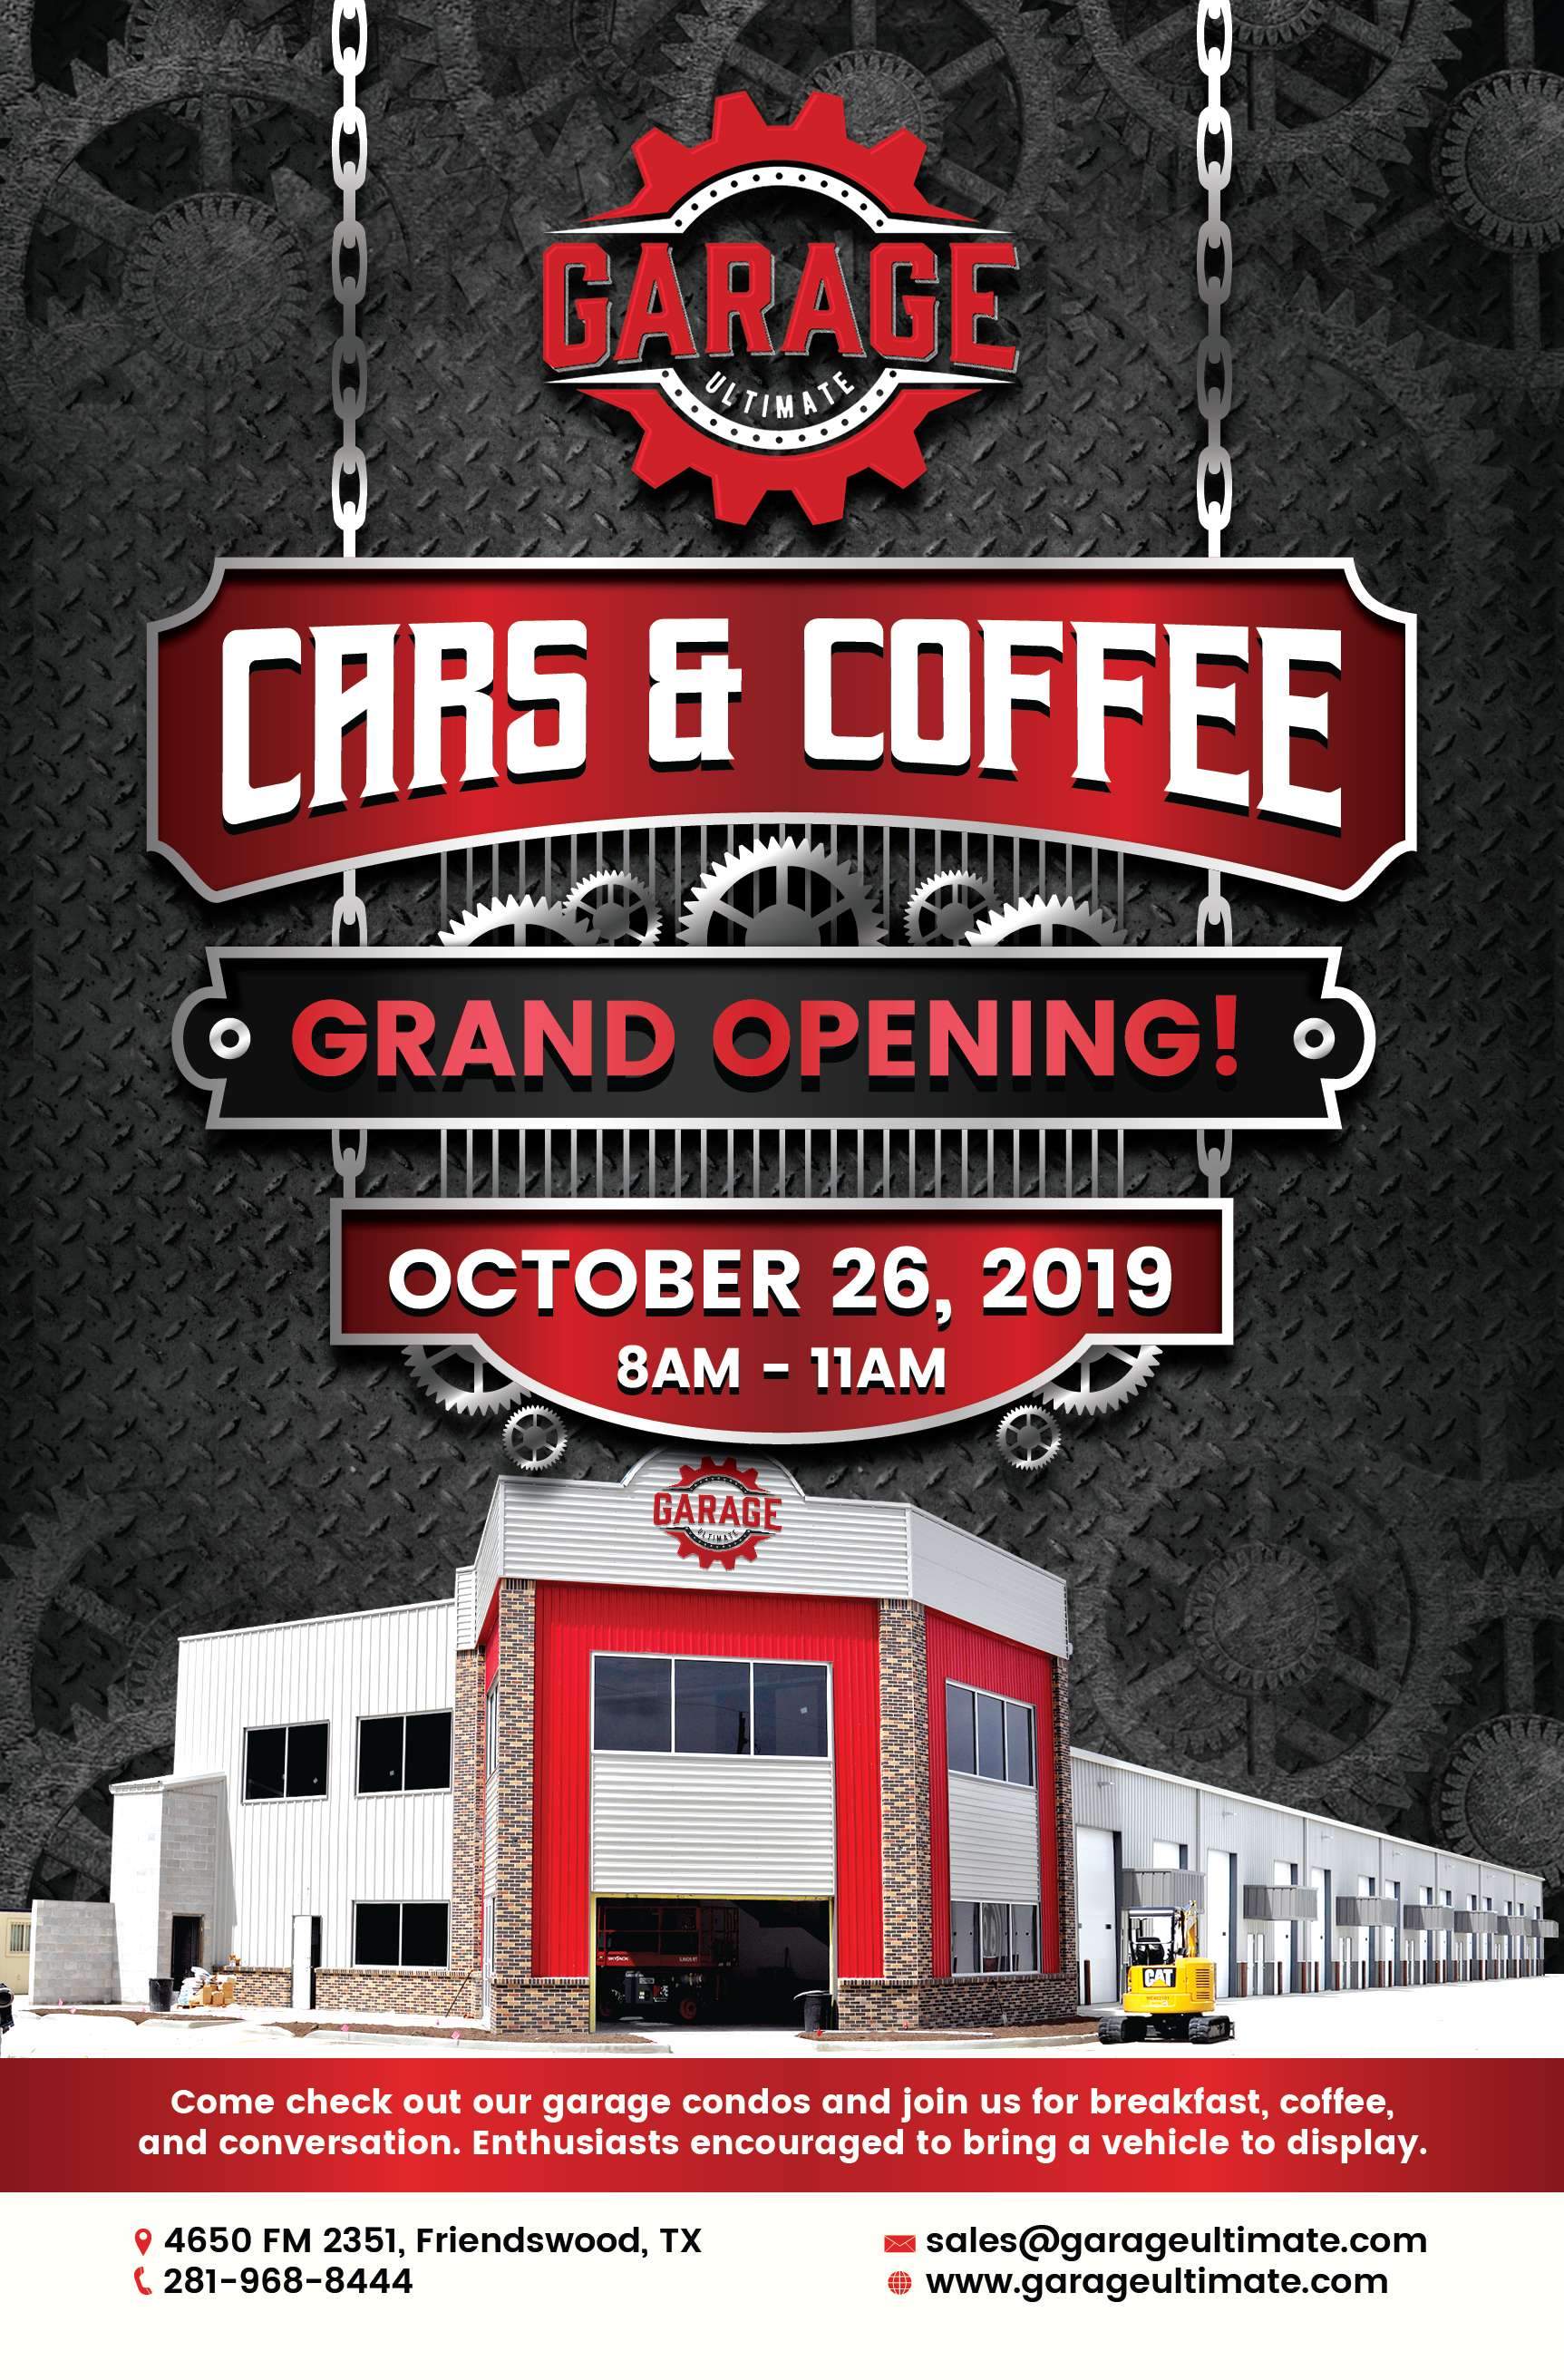 Design Annoucement of Garage Condo Cars & Coffee Grand Opening!